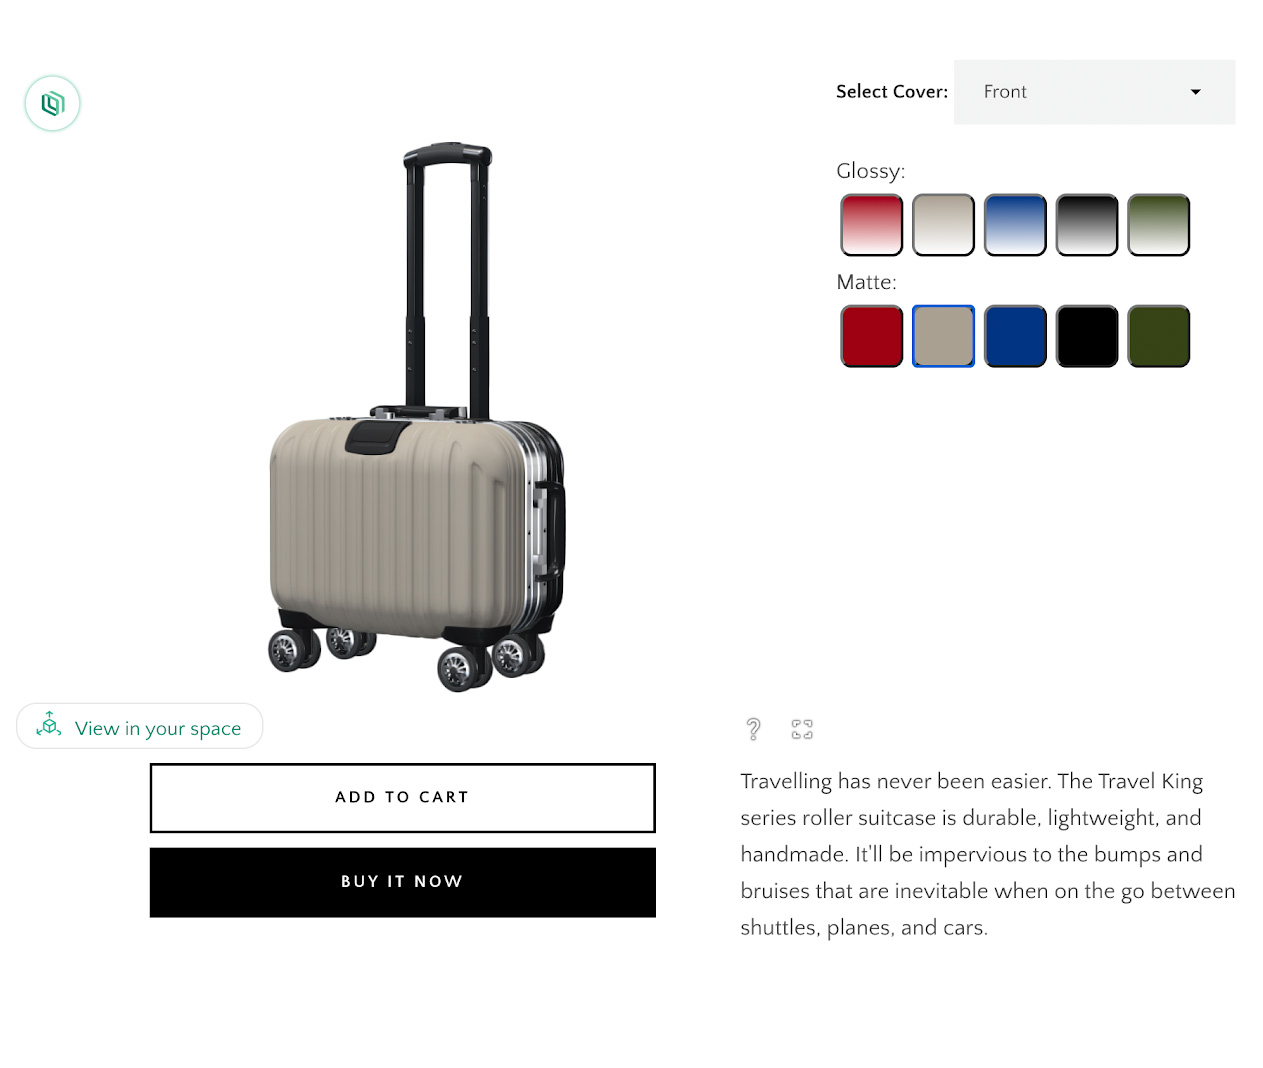 luggage_for_device